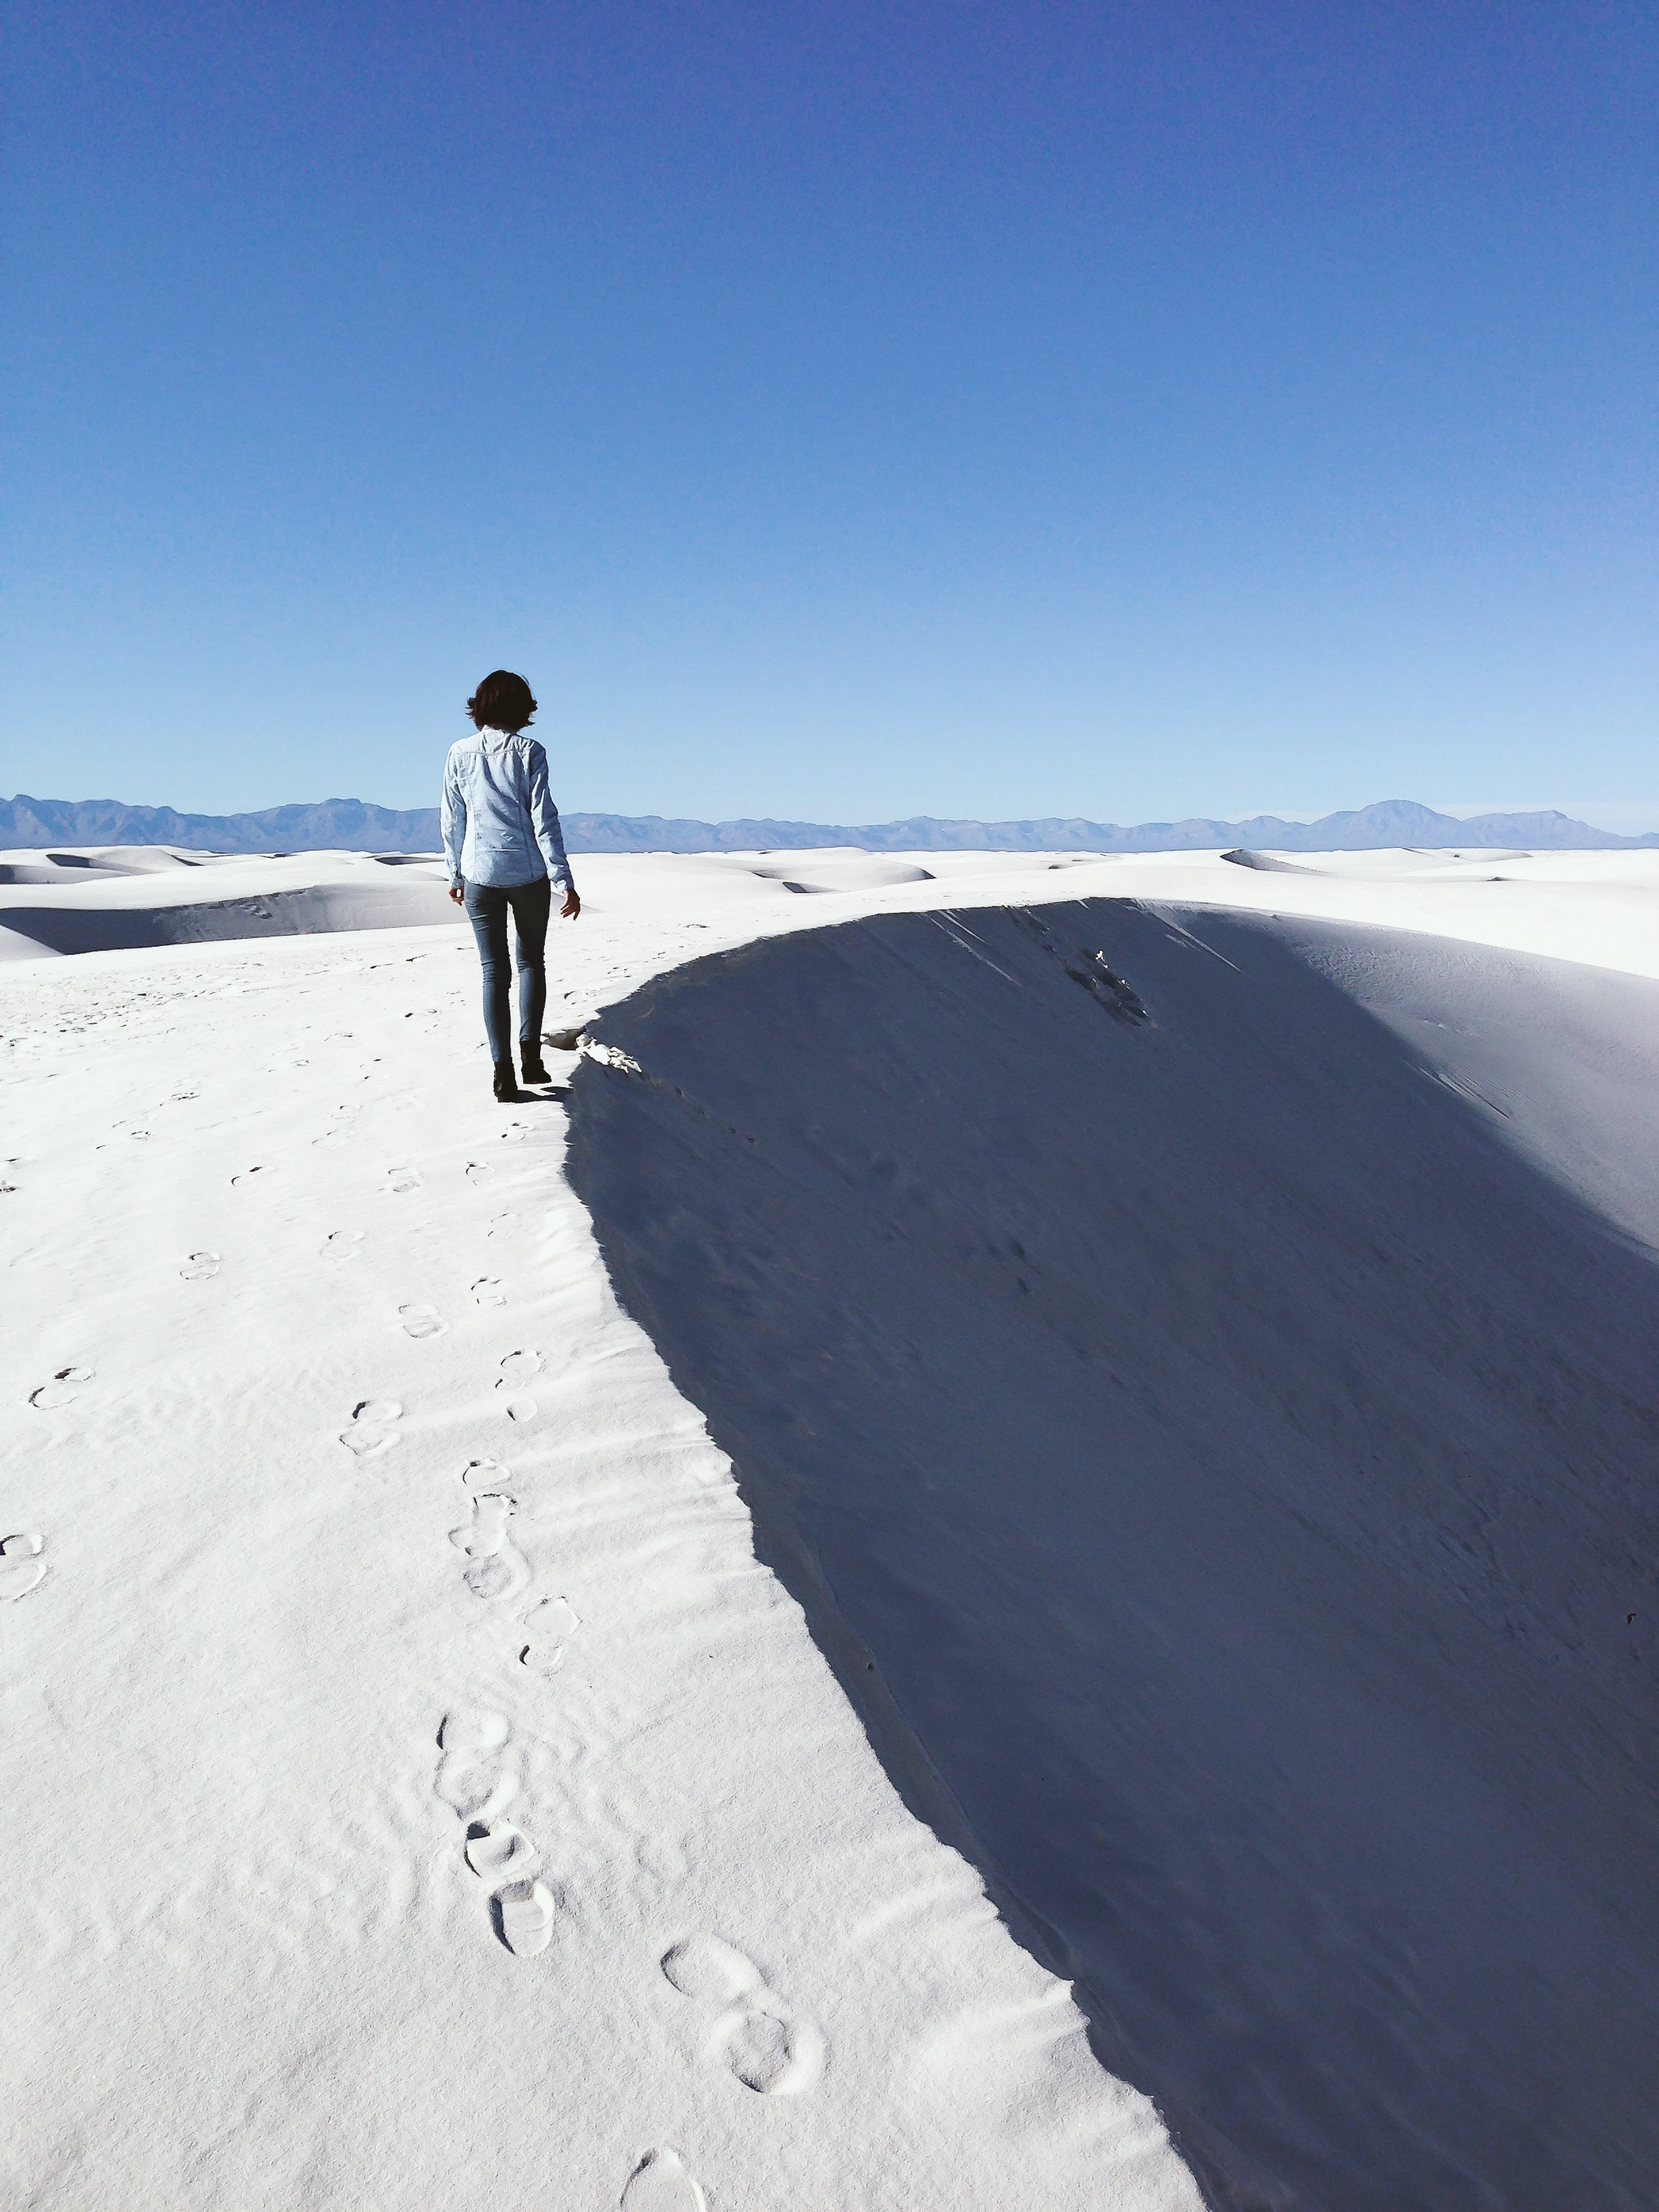 White Sands National Monument, New Mexico:  In 2014, I celebrated my 27th birthday (also my first birthday in the US) at White Sands National Monument in New Mexico. I never saw sand field or sand dune before, let alone sledding on one! That day was well spent, and it has become my favorite place in New Mexico.